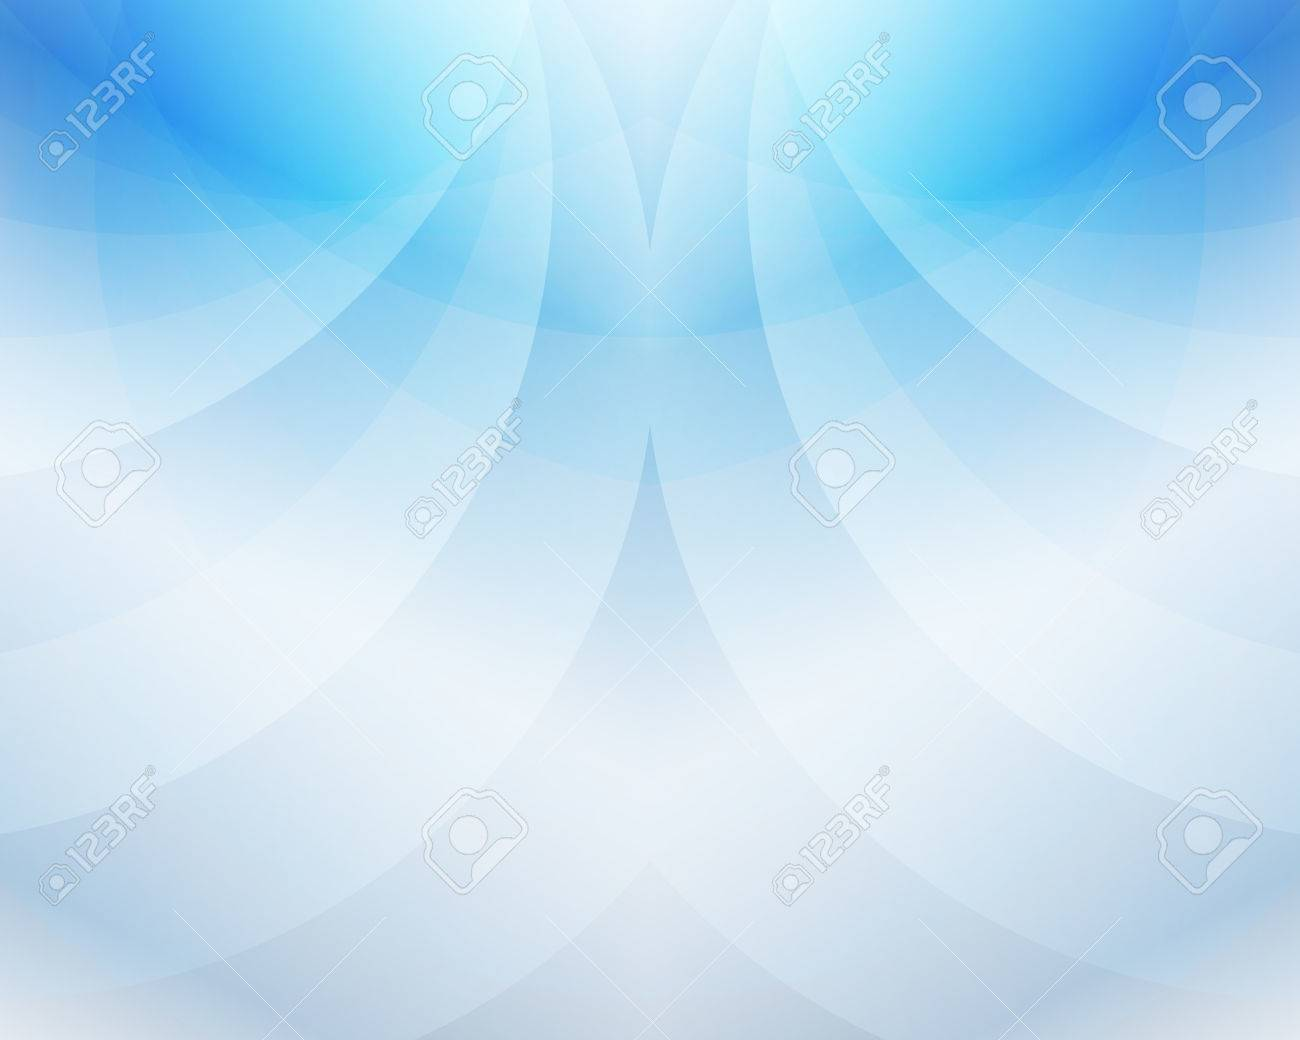 Heaven Blue Sky Wave Abstract Background Vector Illustration eps 10 - 31490857